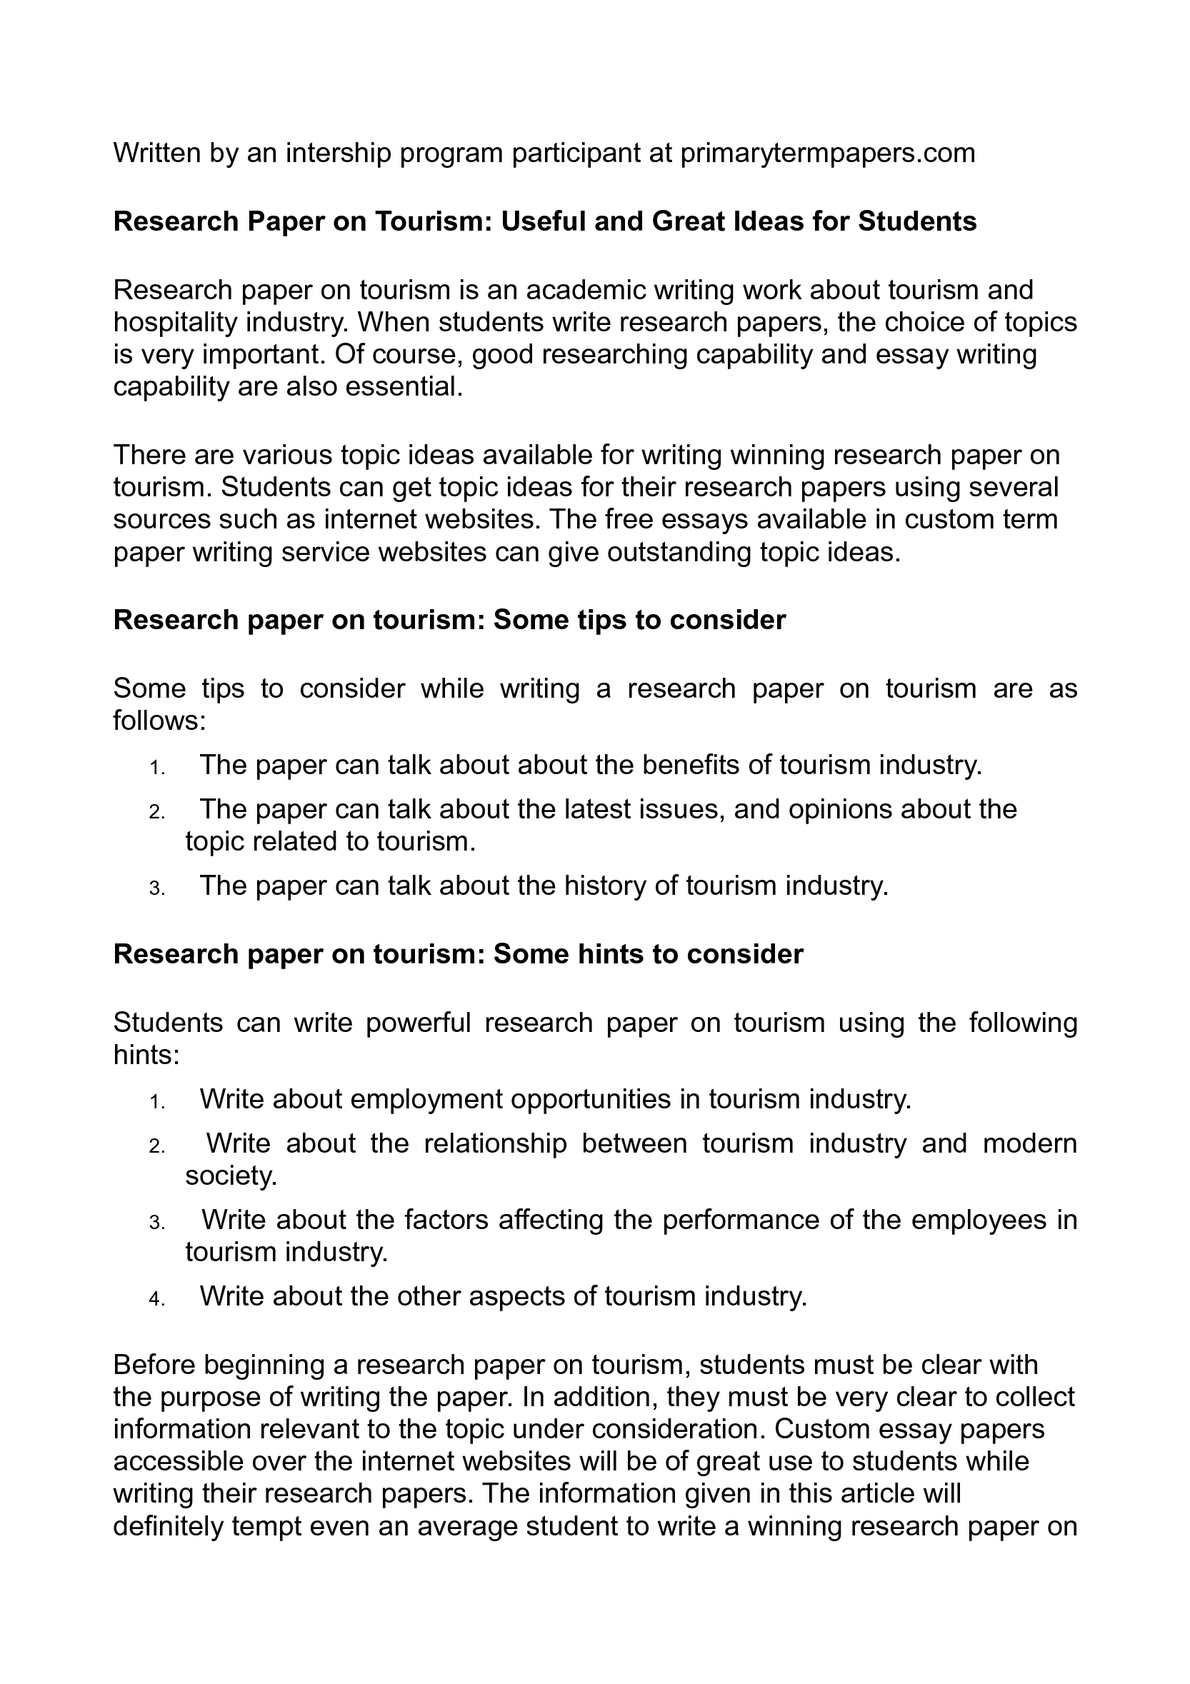 002 Ideas To Write Research Paper On Dreaded A Good Full